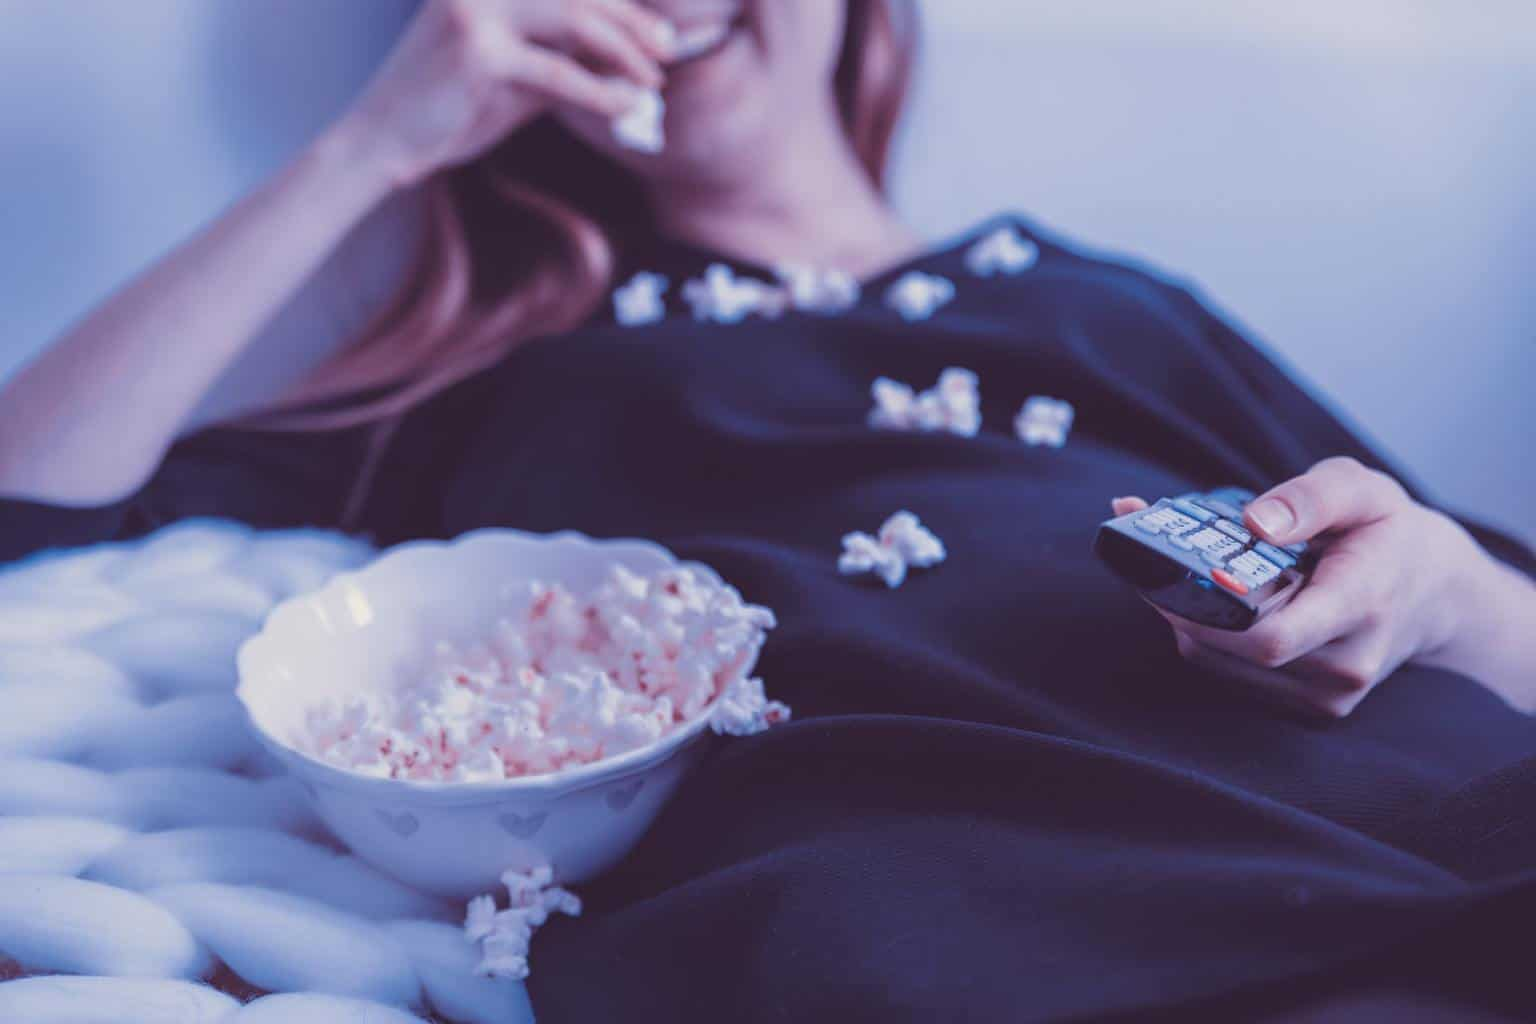 Can Movies Help You Fall Asleep Faster?